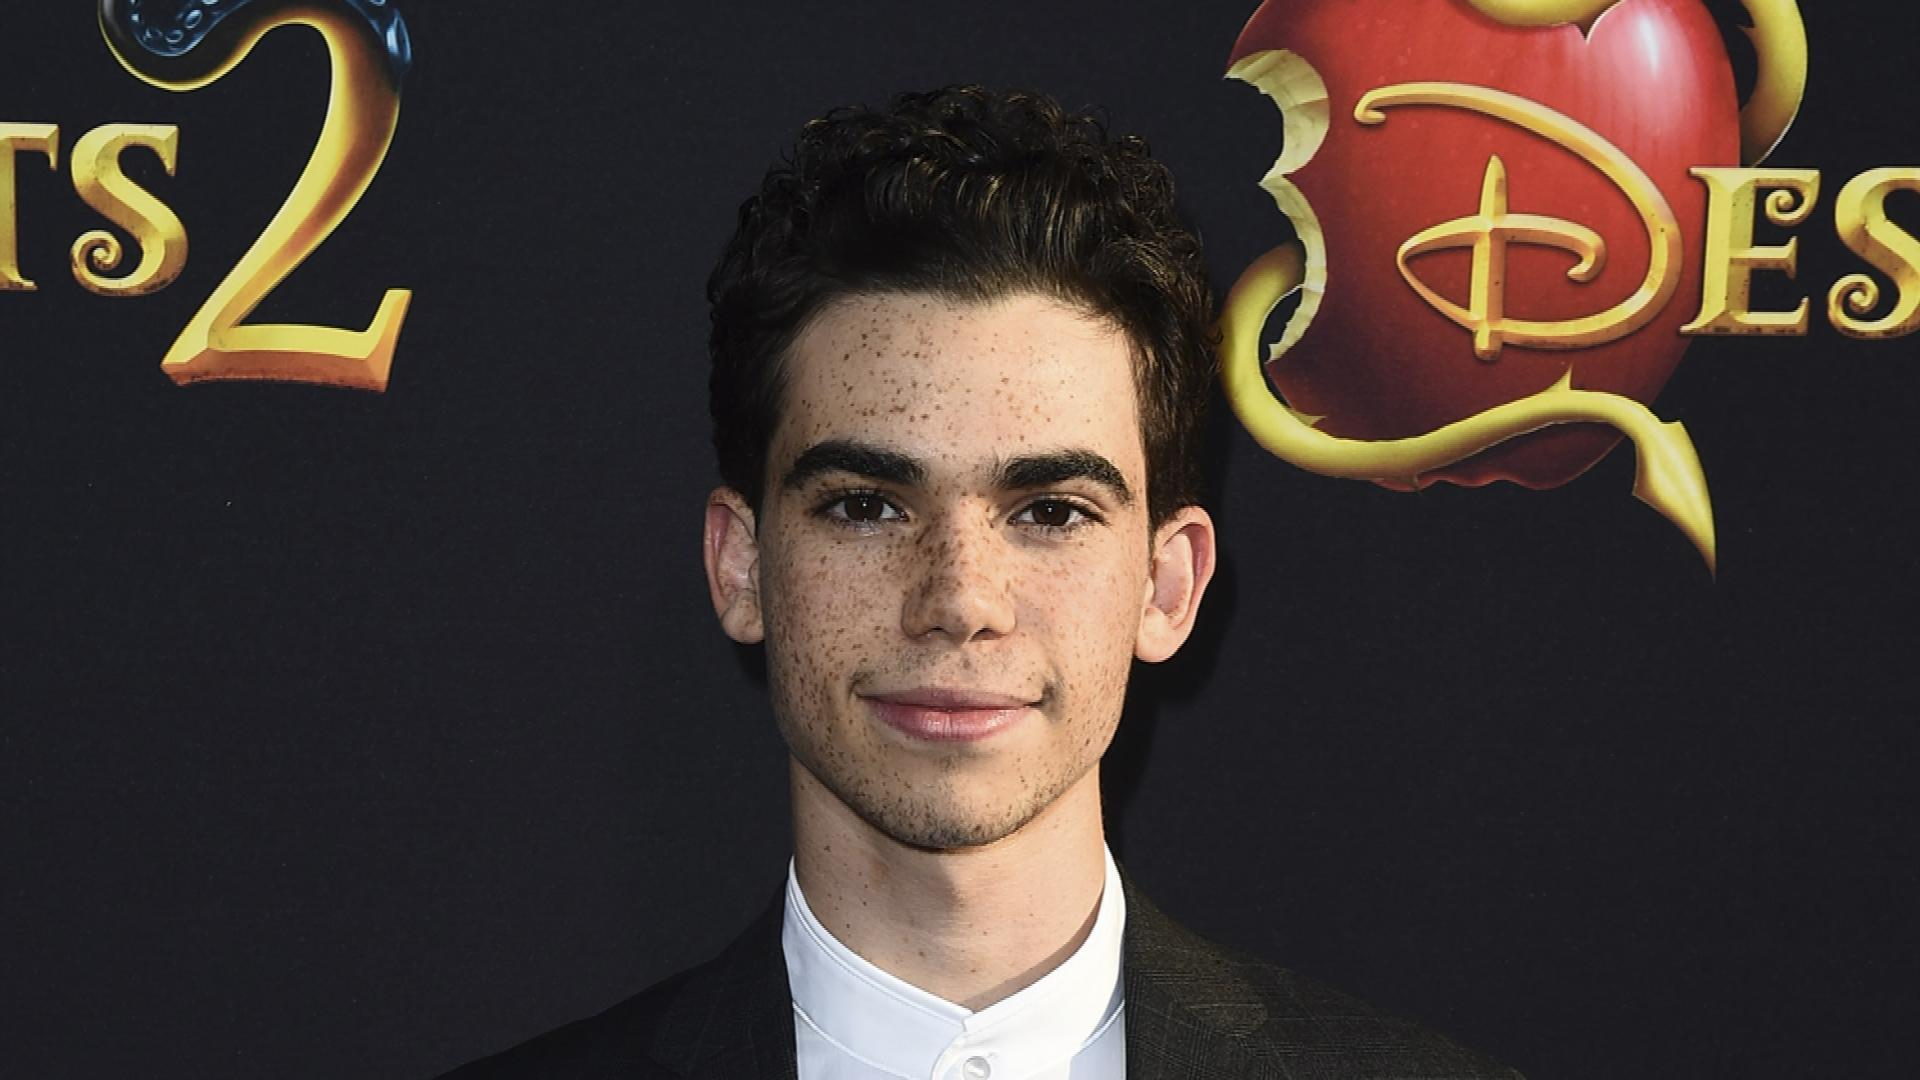 Cameron Boyce's reason of death deferred: further investigation pending